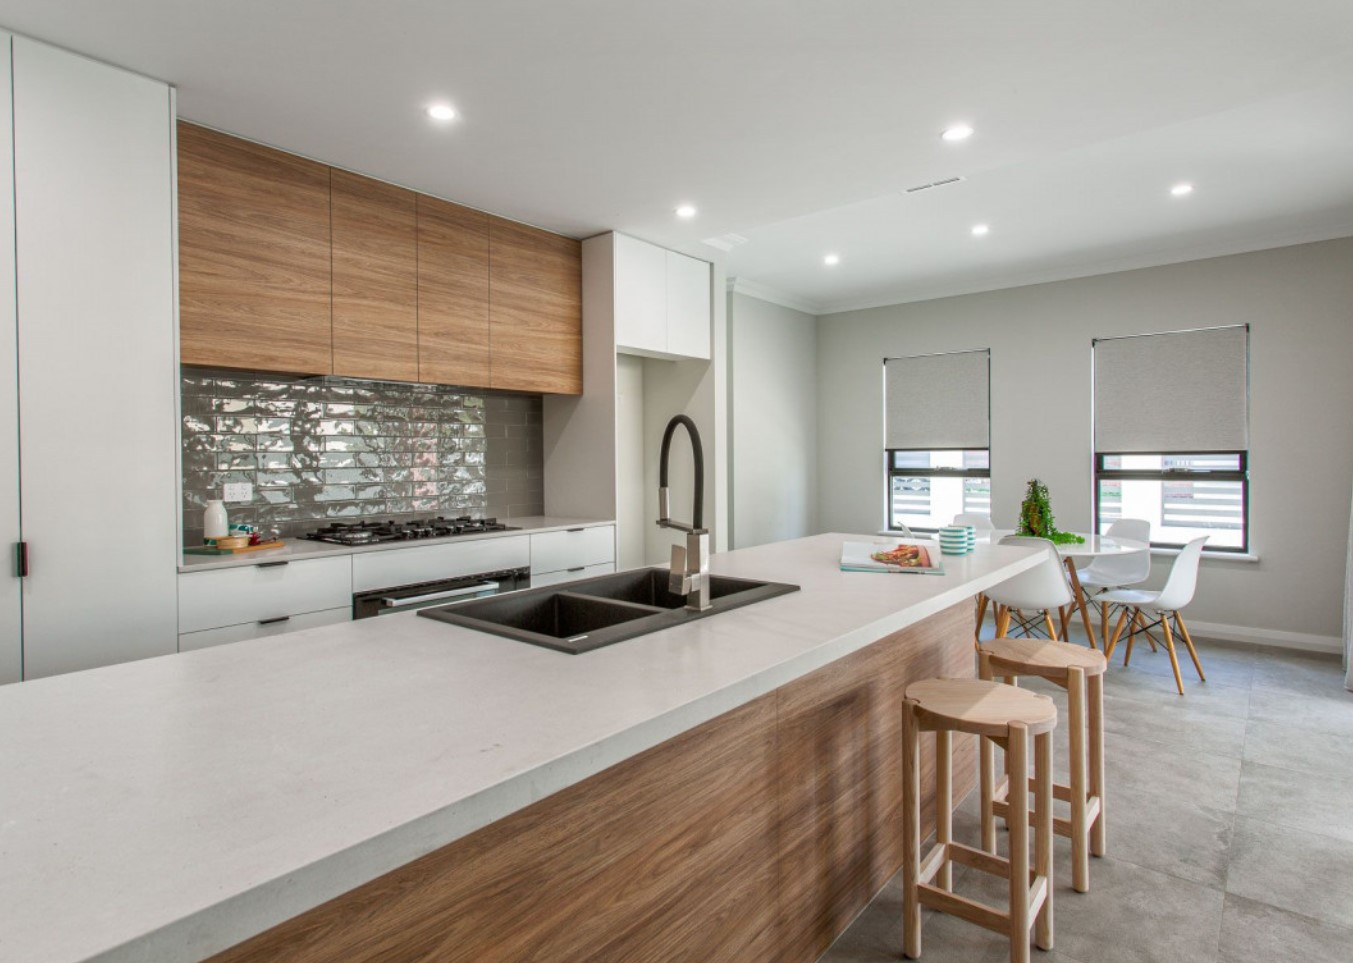 https://www.mintrealestate.com.au/listings/residential_sale-2221423-white-gum-valley/